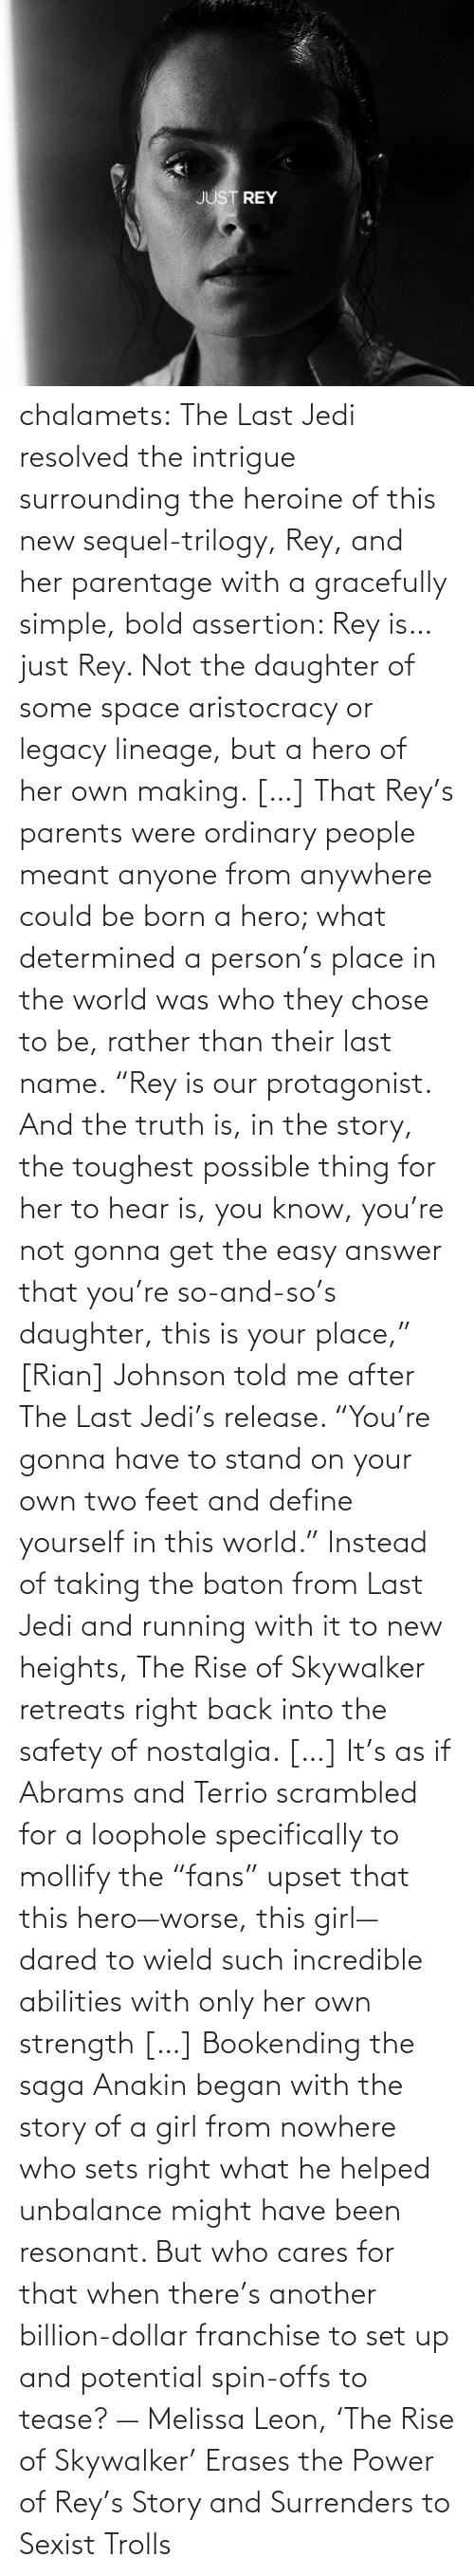 "upset: chalamets:  The Last Jedi resolved the intrigue surrounding the heroine of this new sequel-trilogy, Rey, and her parentage with a gracefully simple, bold assertion: Rey is… just Rey. Not the daughter of some space aristocracy or legacy lineage, but a hero of her own making. […] That Rey's parents were ordinary people meant anyone from anywhere could be born a hero; what determined a person's place in the world was who they chose to be, rather than their last name. ""Rey is our protagonist. And the truth is, in the story, the toughest possible thing for her to hear is, you know, you're not gonna get the easy answer that you're so-and-so's daughter, this is your place,"" [Rian] Johnson told me after The Last Jedi's release. ""You're gonna have to stand on your own two feet and define yourself in this world."" Instead of taking the baton from Last Jedi and running with it to new heights, The Rise of Skywalker retreats right back into the safety of nostalgia. […] It's as if Abrams and Terrio scrambled for a loophole specifically to mollify the ""fans"" upset that this hero—worse, this girl—dared to wield such incredible abilities with only her own strength […] Bookending the saga Anakin began with the story of a girl from nowhere who sets right what he helped unbalance might have been resonant. But who cares for that when there's another billion-dollar franchise to set up and potential spin-offs to tease? — Melissa Leon, 'The Rise of Skywalker' Erases the Power of Rey's Story and Surrenders to Sexist Trolls"